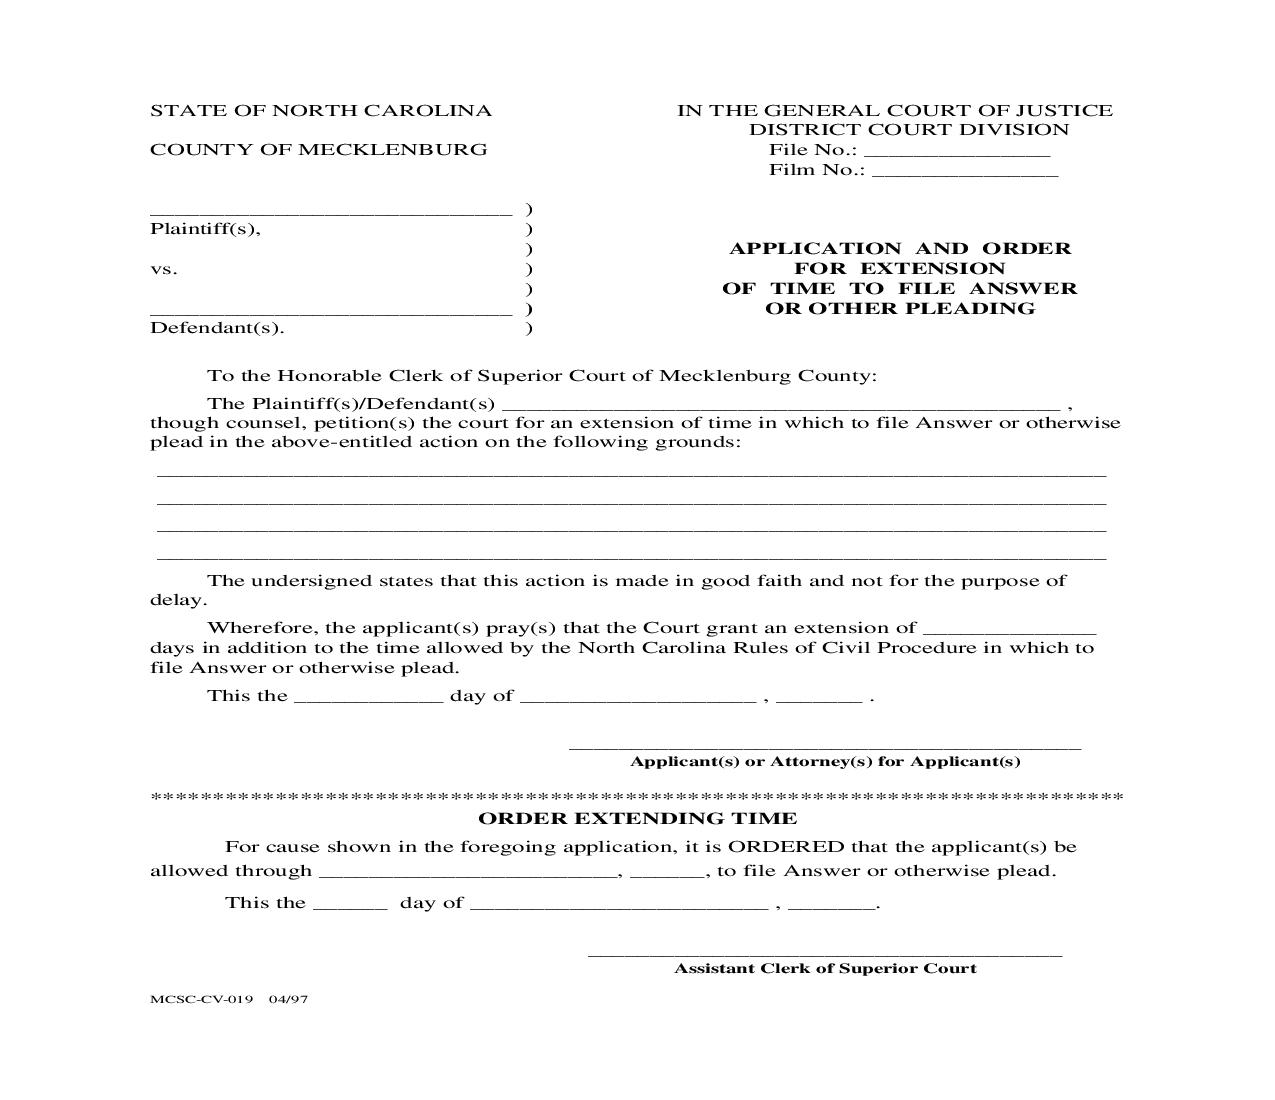 Application And Order For Extenstion Of Time To File Answer And Or Other Pleading {MCSC-CV-019} | Pdf Fpdf Doc Docx | North Carolina